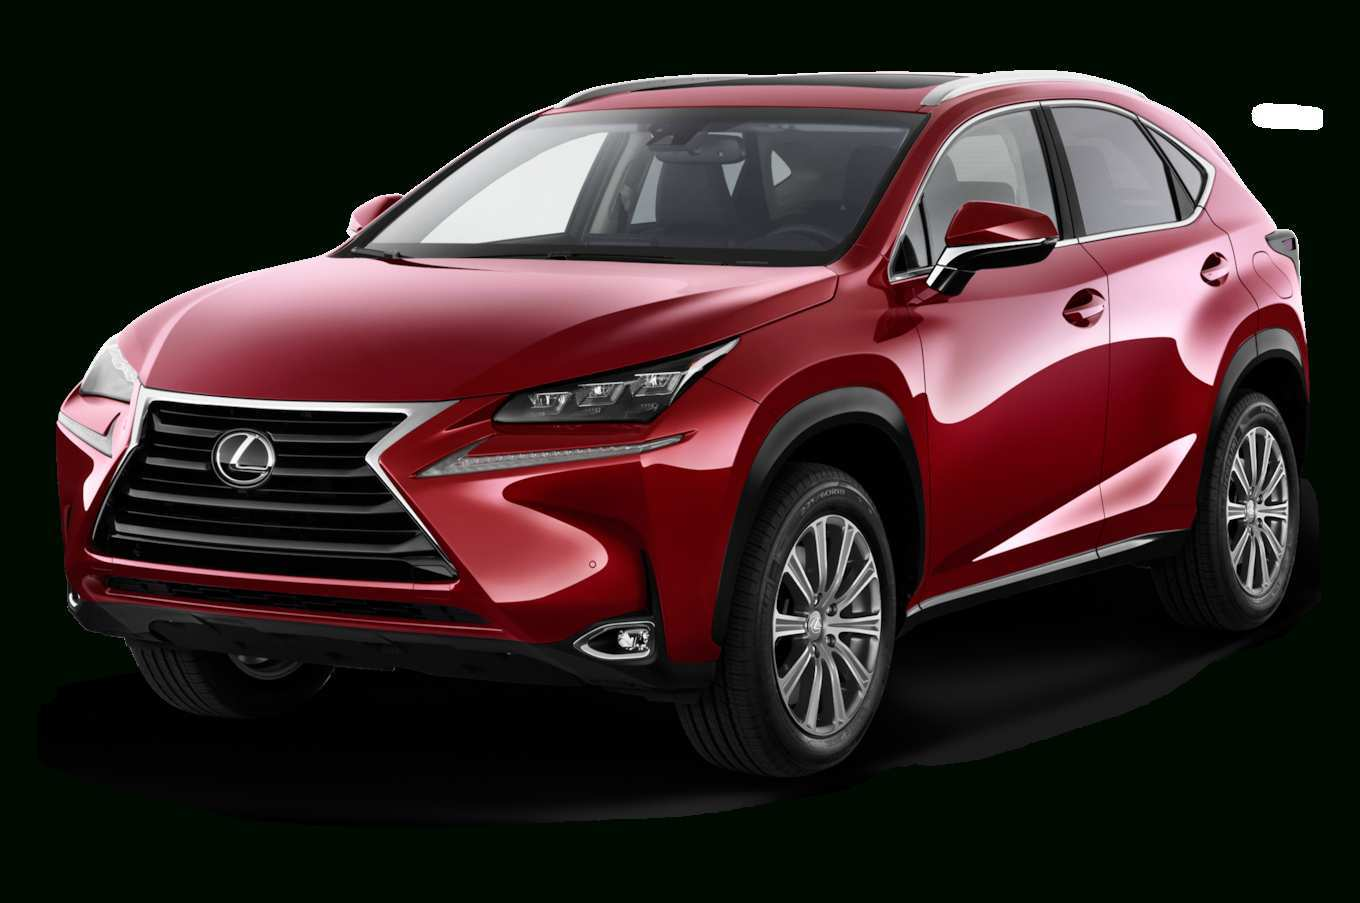 94 The 2020 Lexus NX 200t Price And Release Date